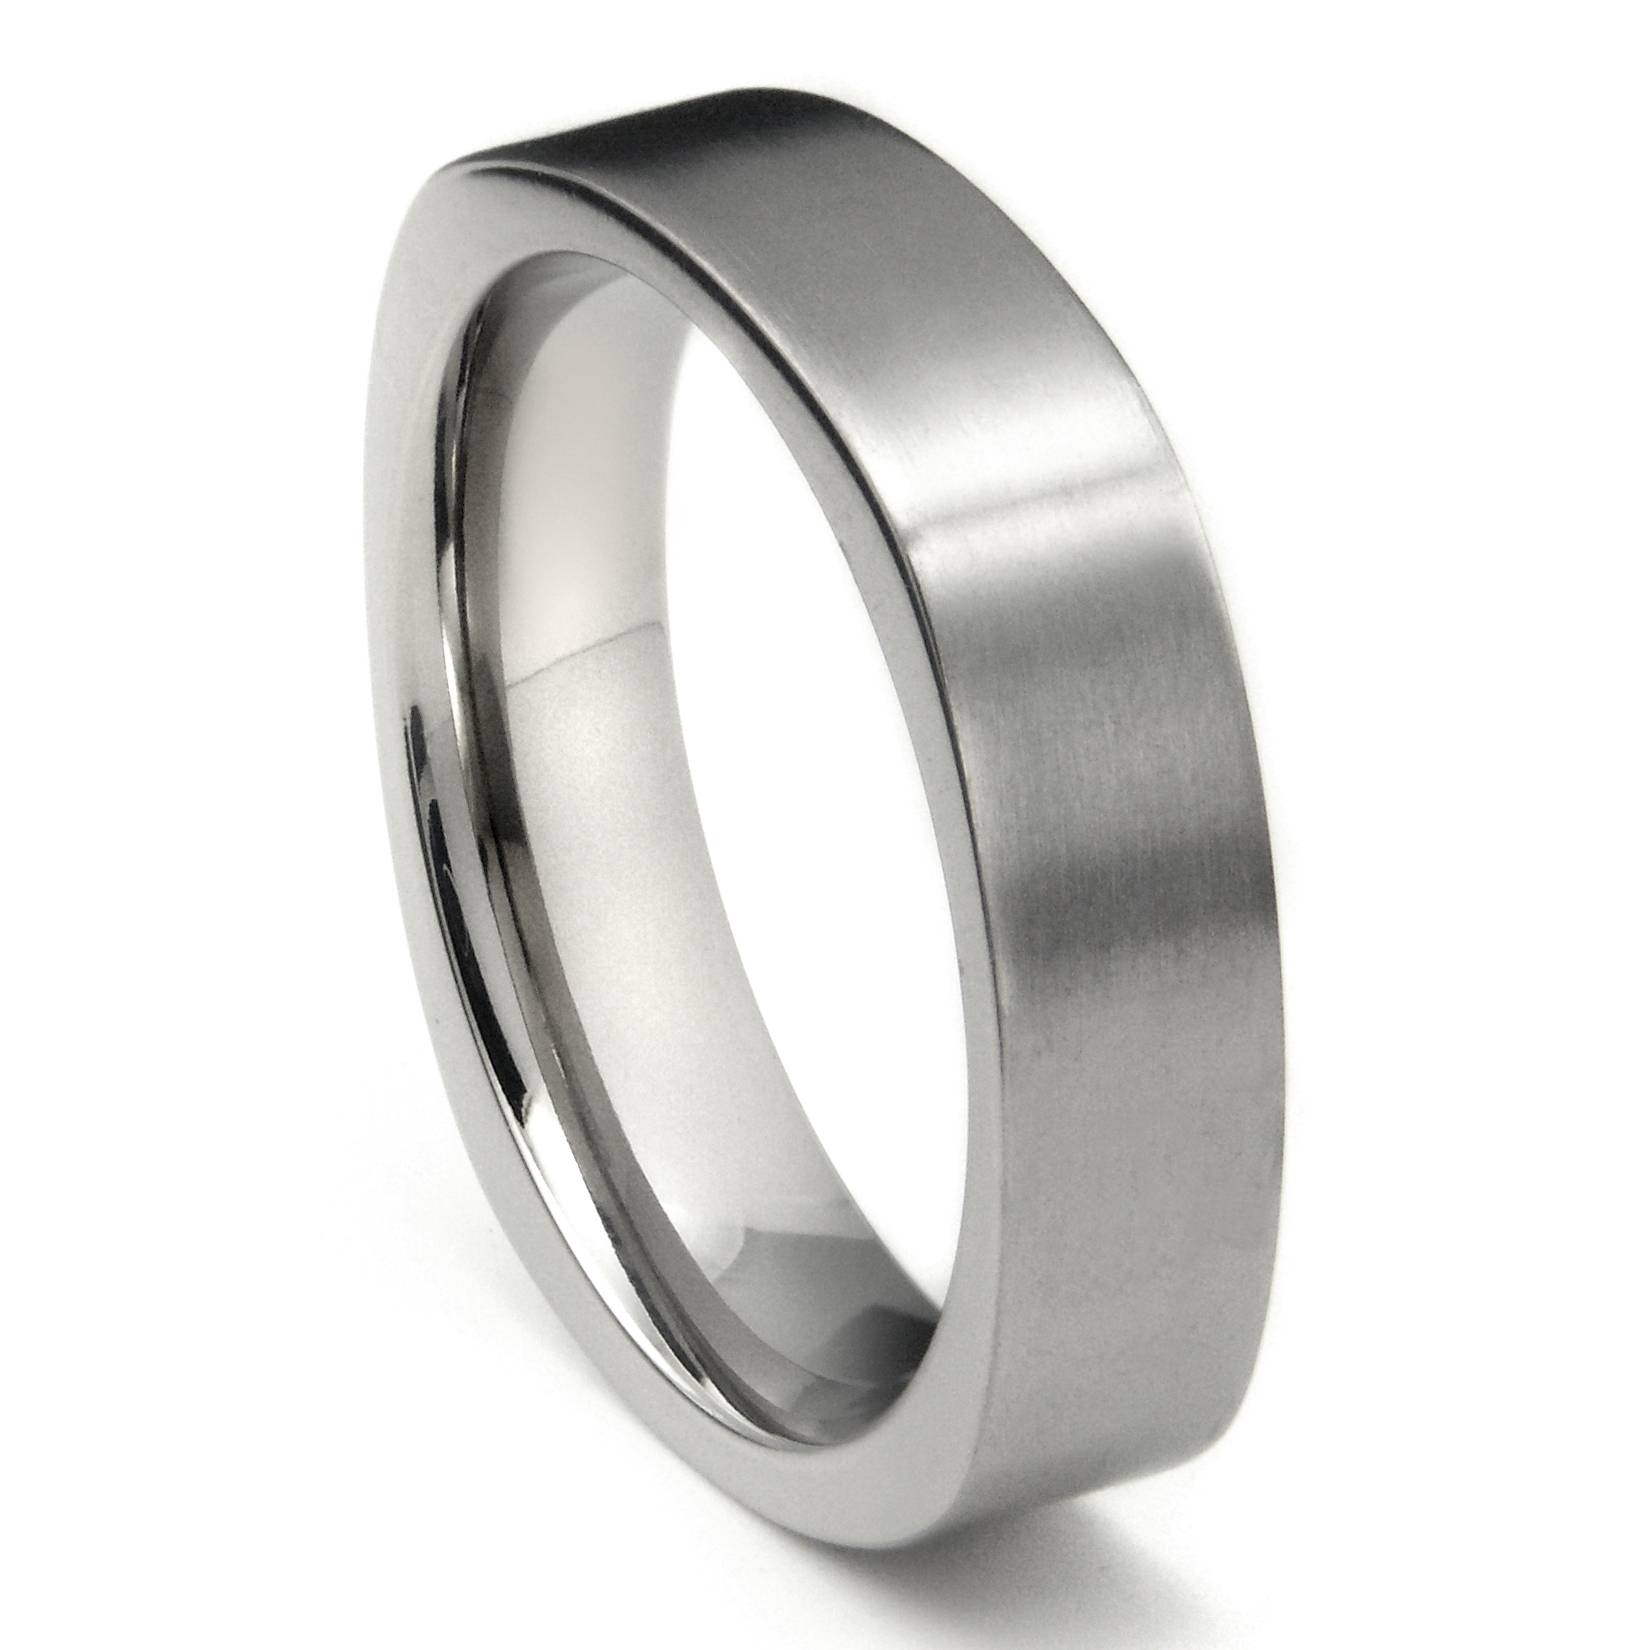 Titanium 6Mm Satin Finish Square Wedding Band Ring Pertaining To Square Mens Wedding Rings (View 15 of 15)